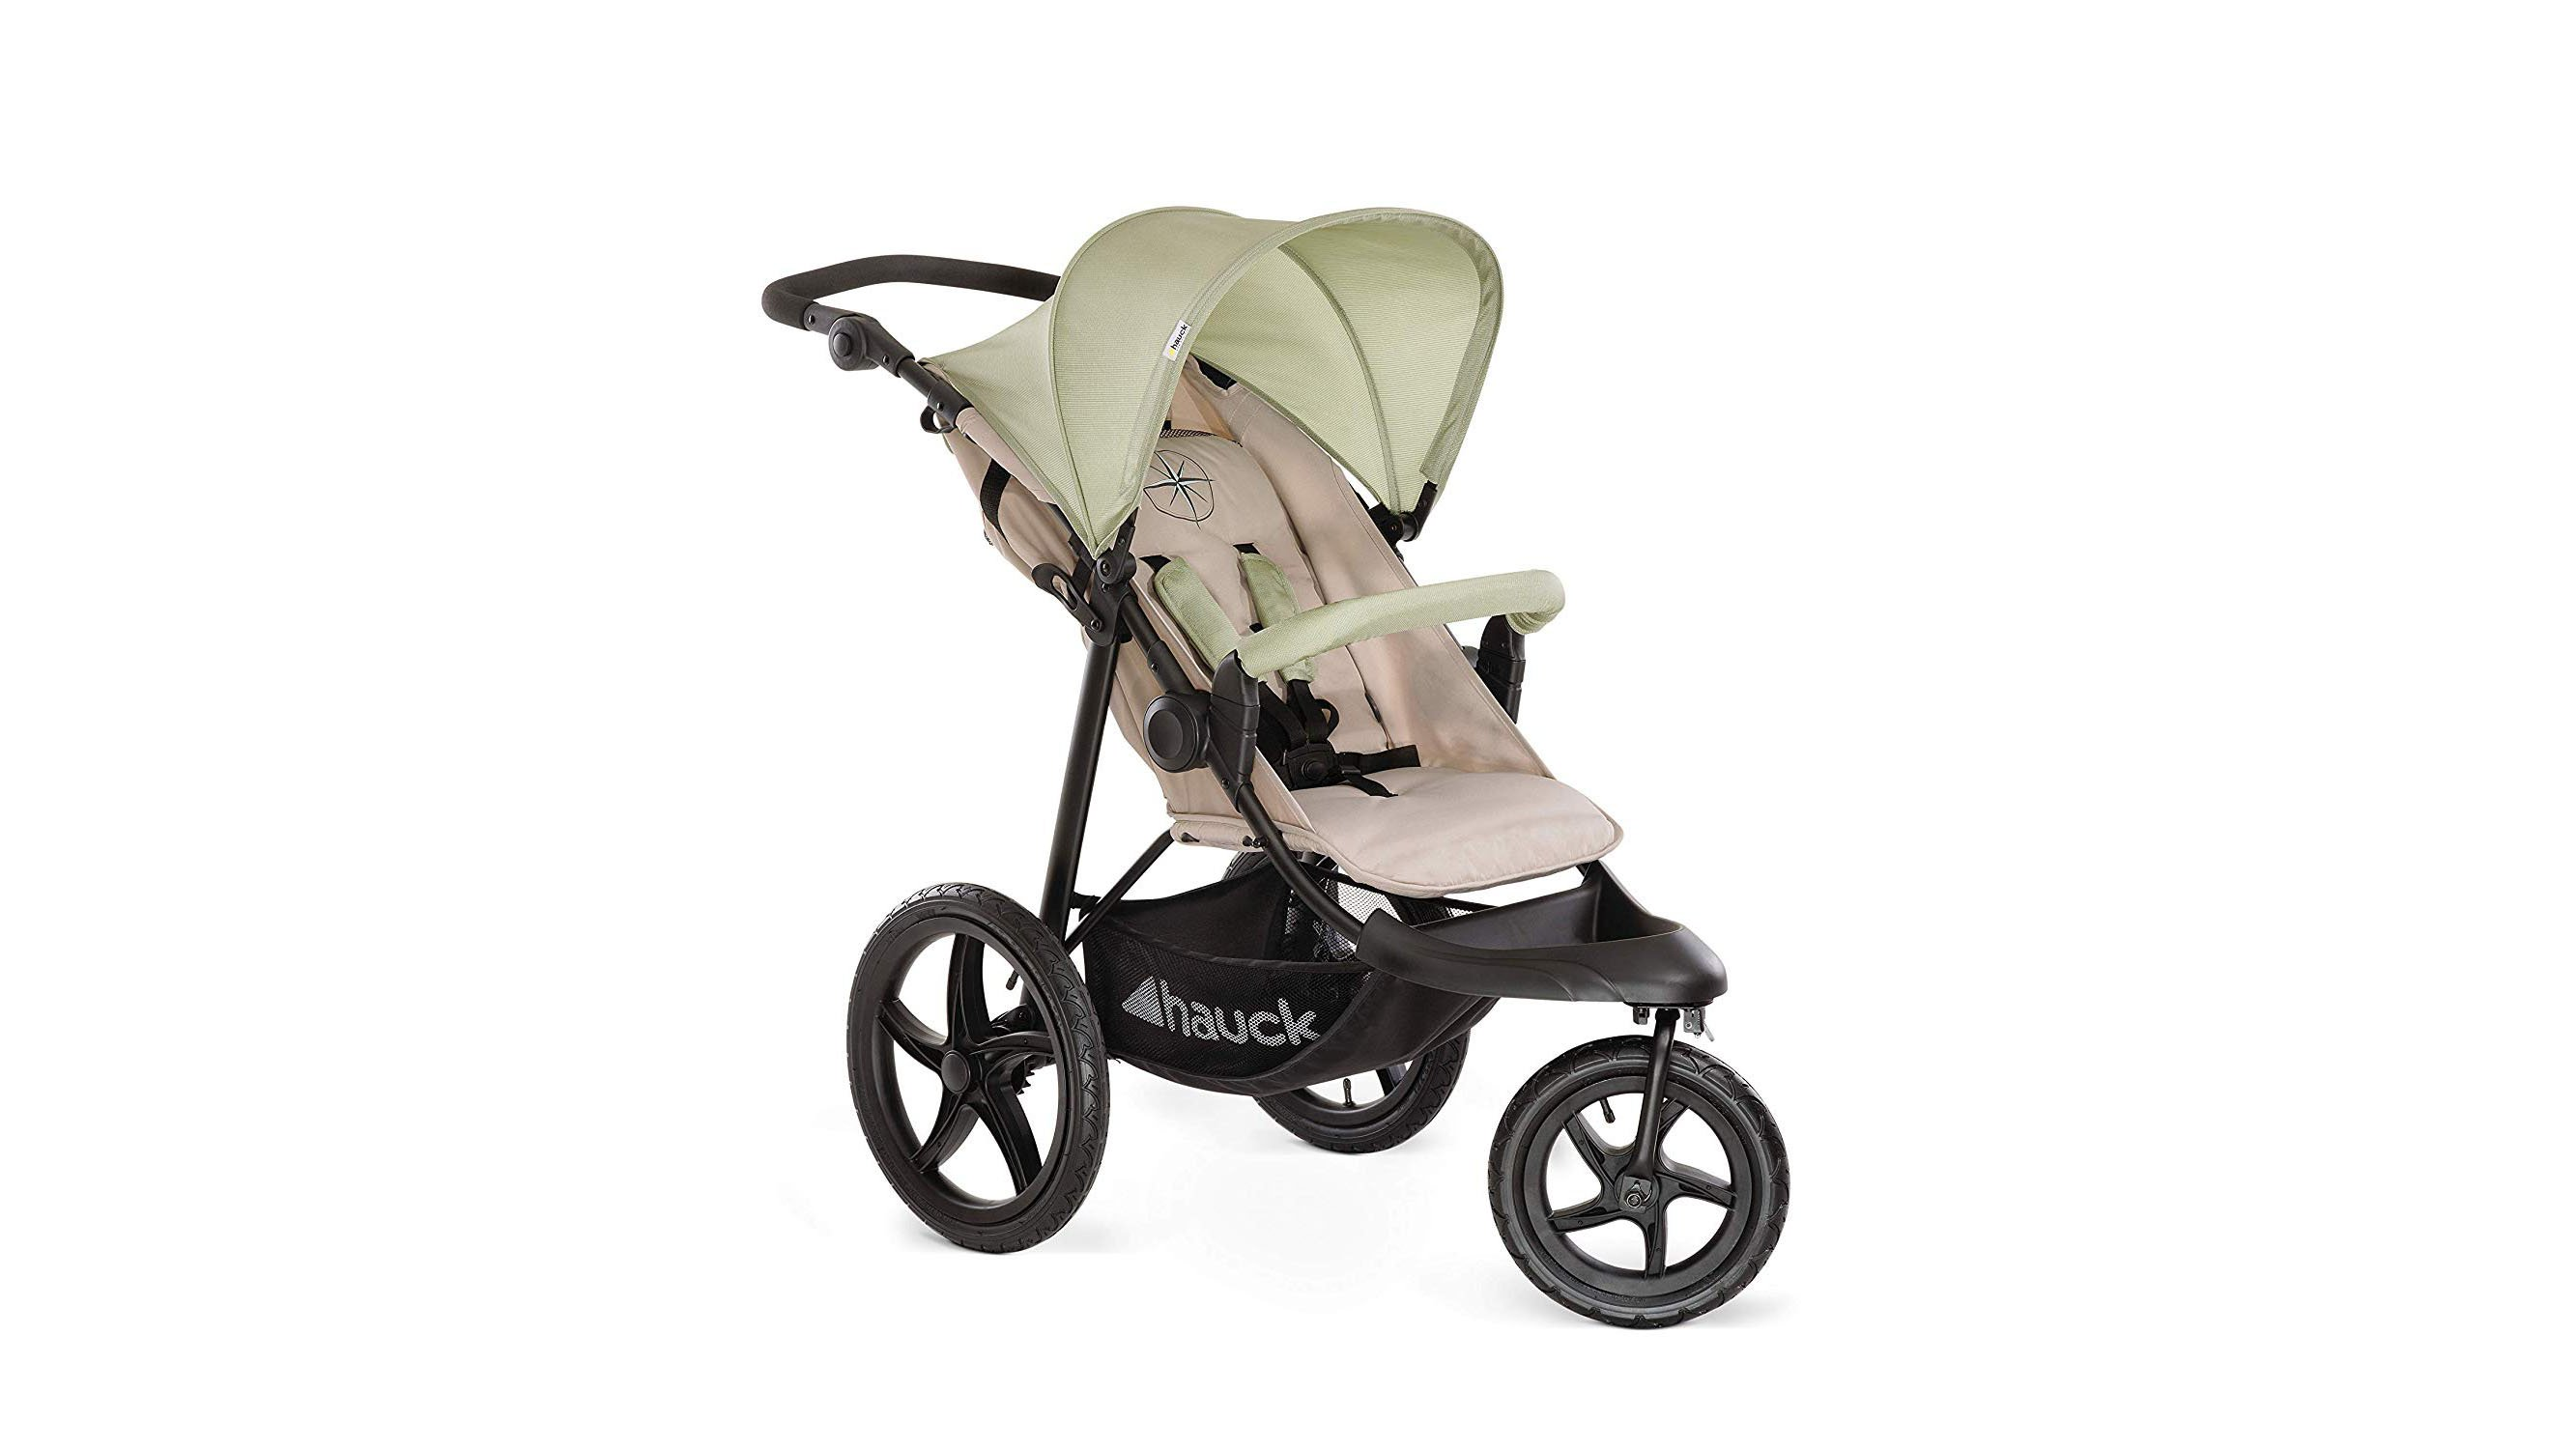 Hauck Runner Review A Brilliant Go Anywhere Stroller For Under 200